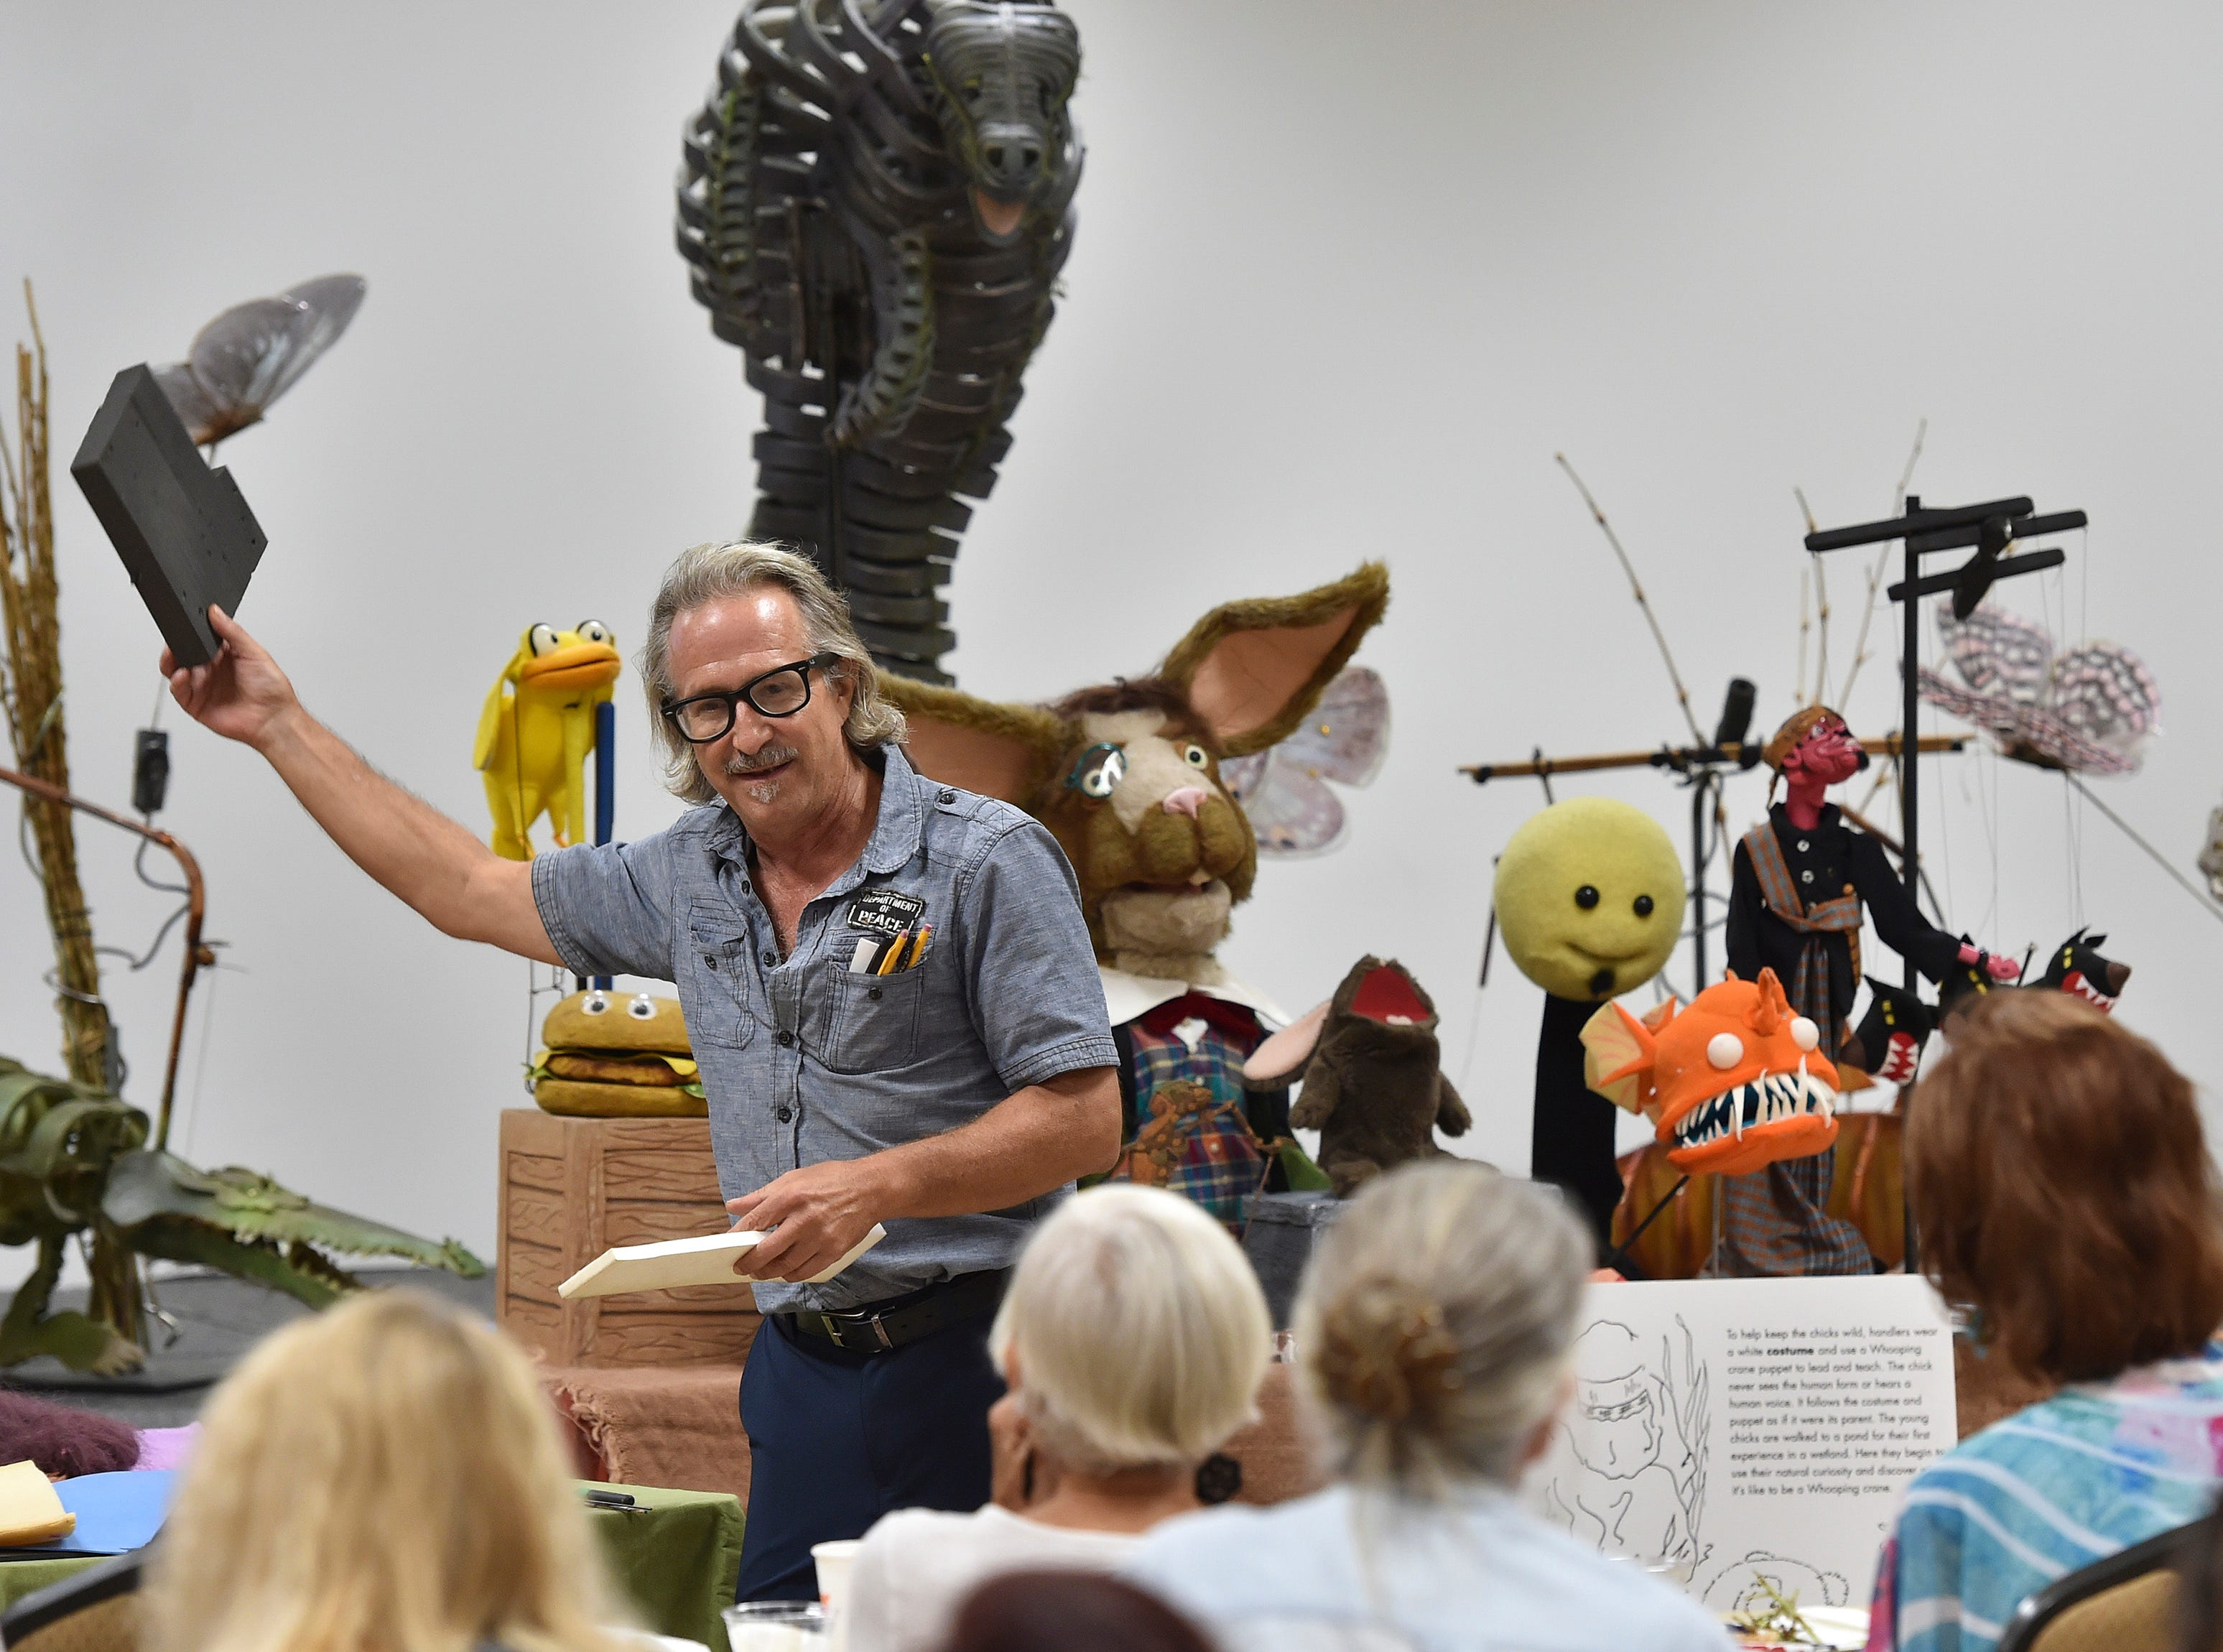 """David Jordan, of Ibex Puppetry of Orlando, holds up a block of microcell foam while describing materials he uses to manufacture puppets during a puppetry class educators and artists on the history of puppetry and how it can be used in education on Thursday, Sept. 13, 2018, at the Havert L. Fenn Center in Fort Pierce. """"It's a blessing to be able to do puppetry, it's a great art form,"""" Jordan said. """"It's such a broad deep well of exploration, materials, subjects, all of them."""""""